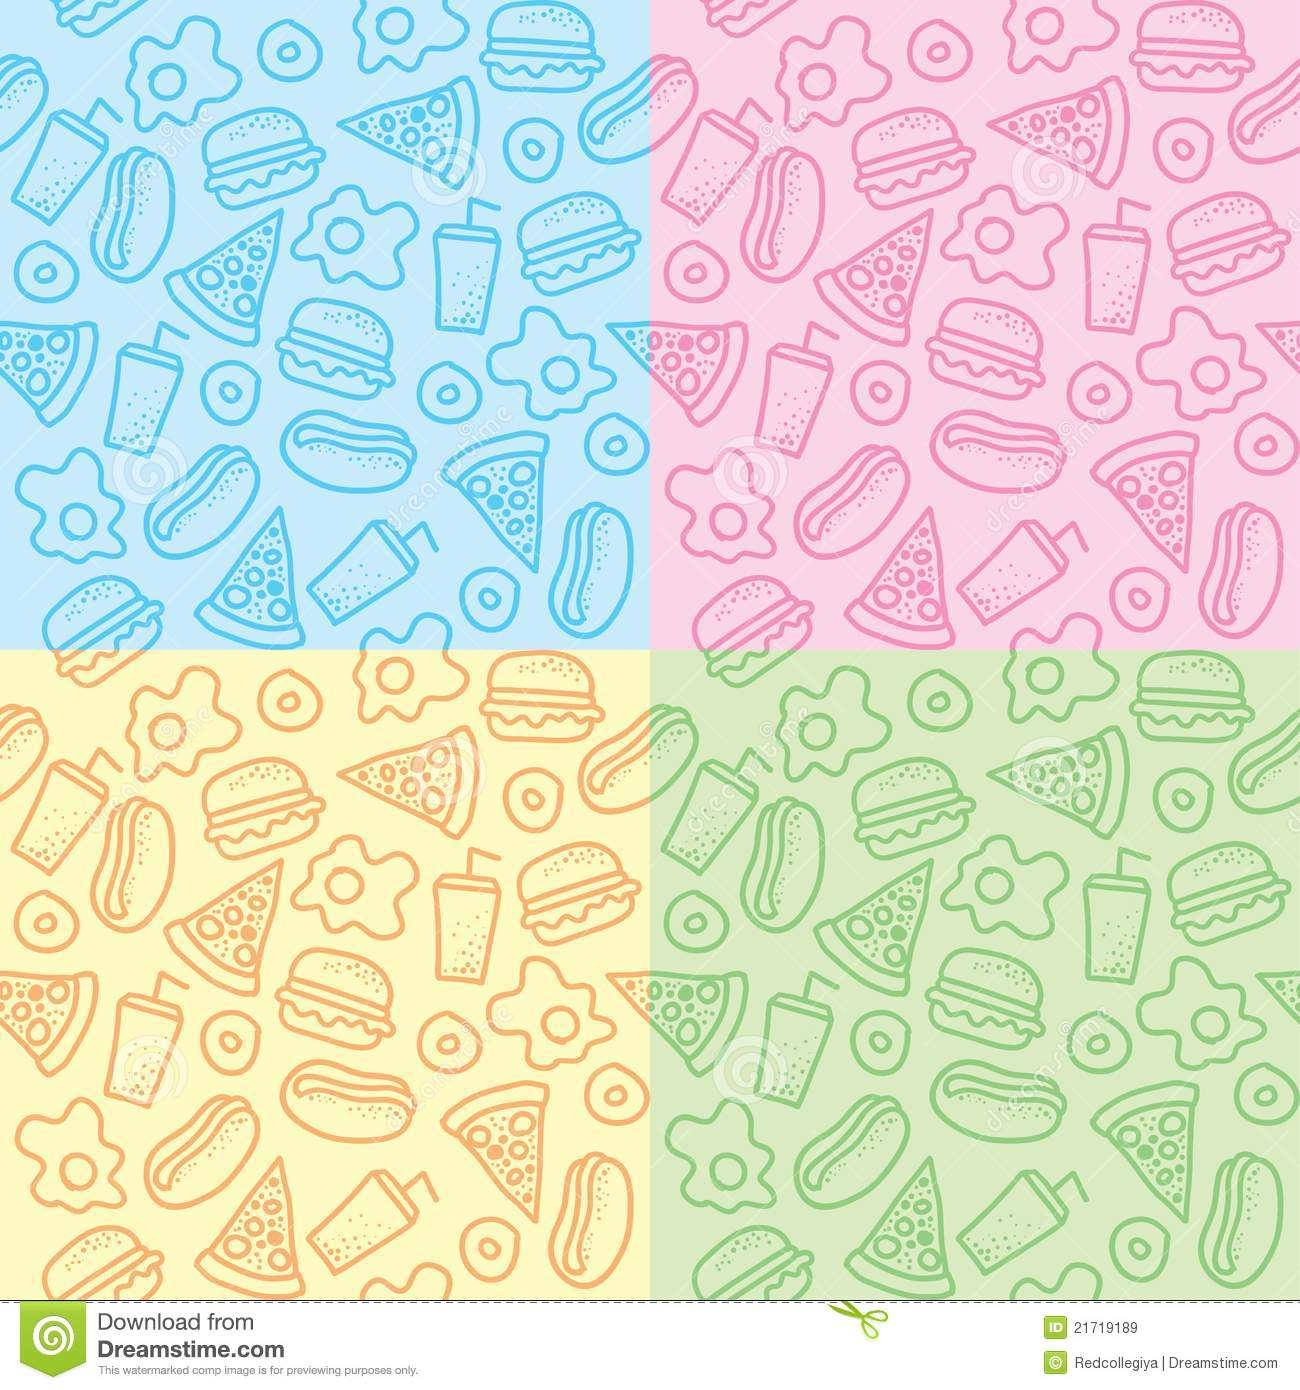 Patterns with fast food